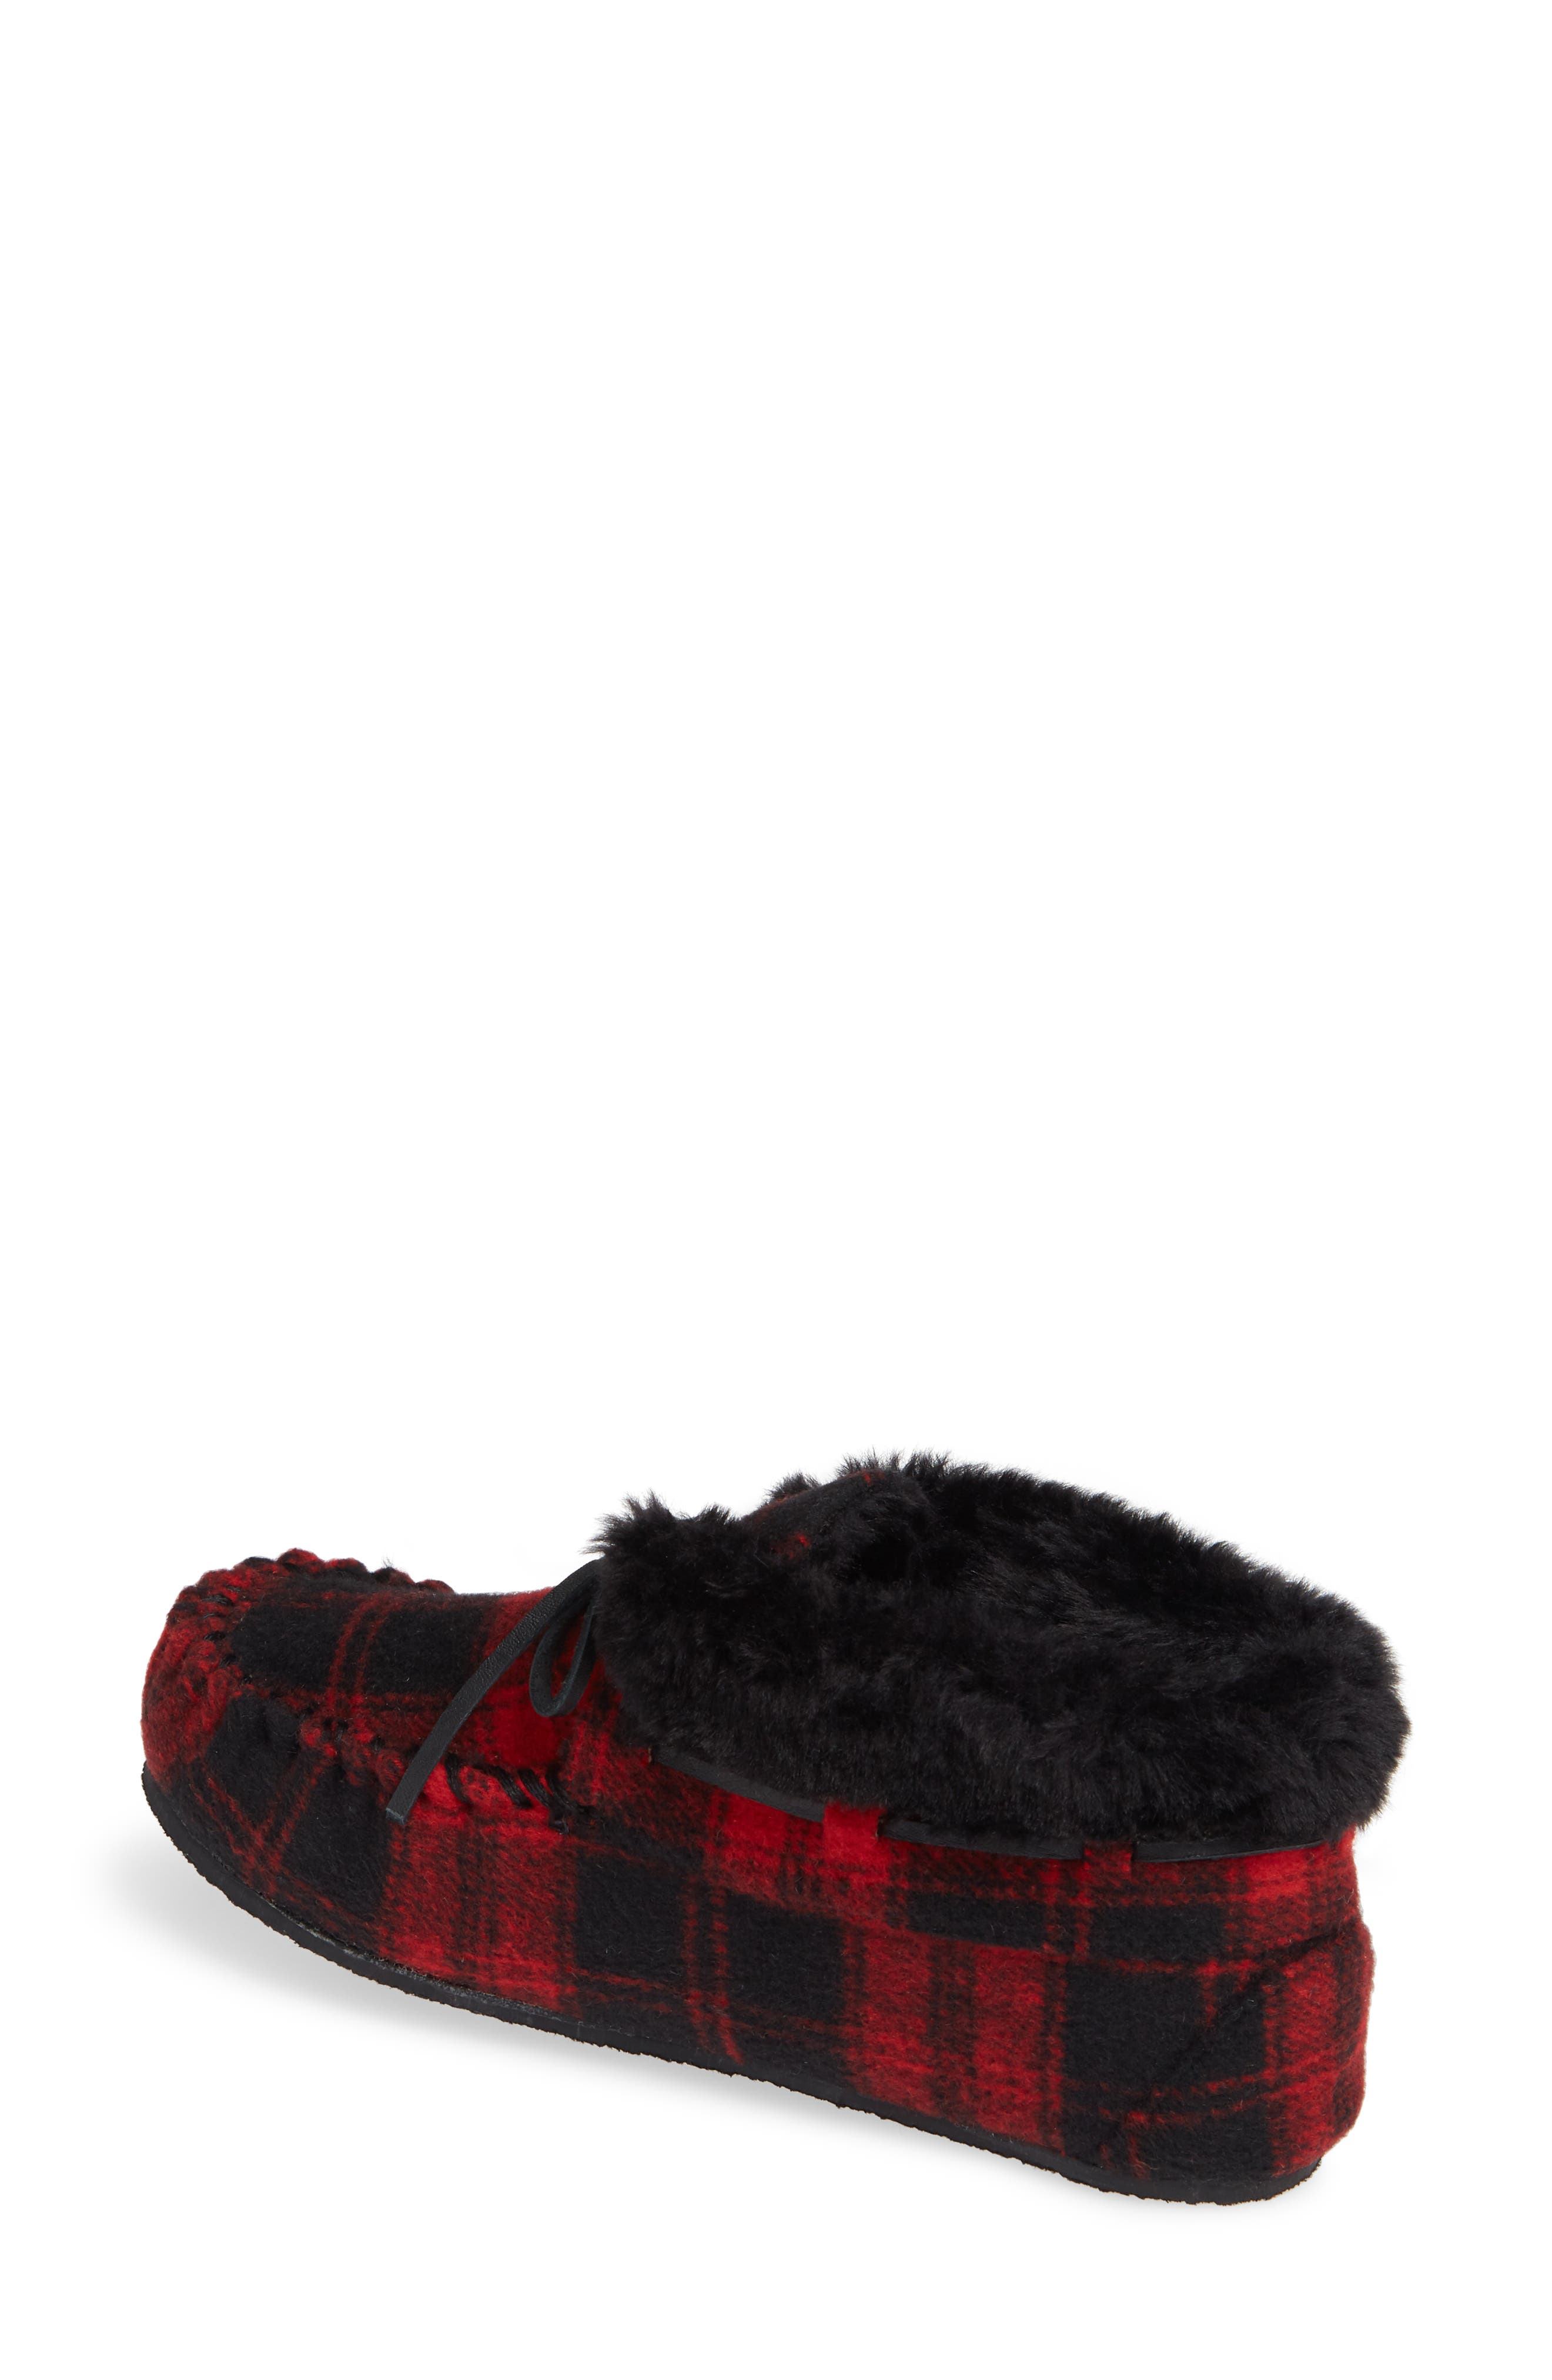 MINNETONKA,                             'Chrissy' Slipper Bootie,                             Alternate thumbnail 2, color,                             RED PLAID FABRIC